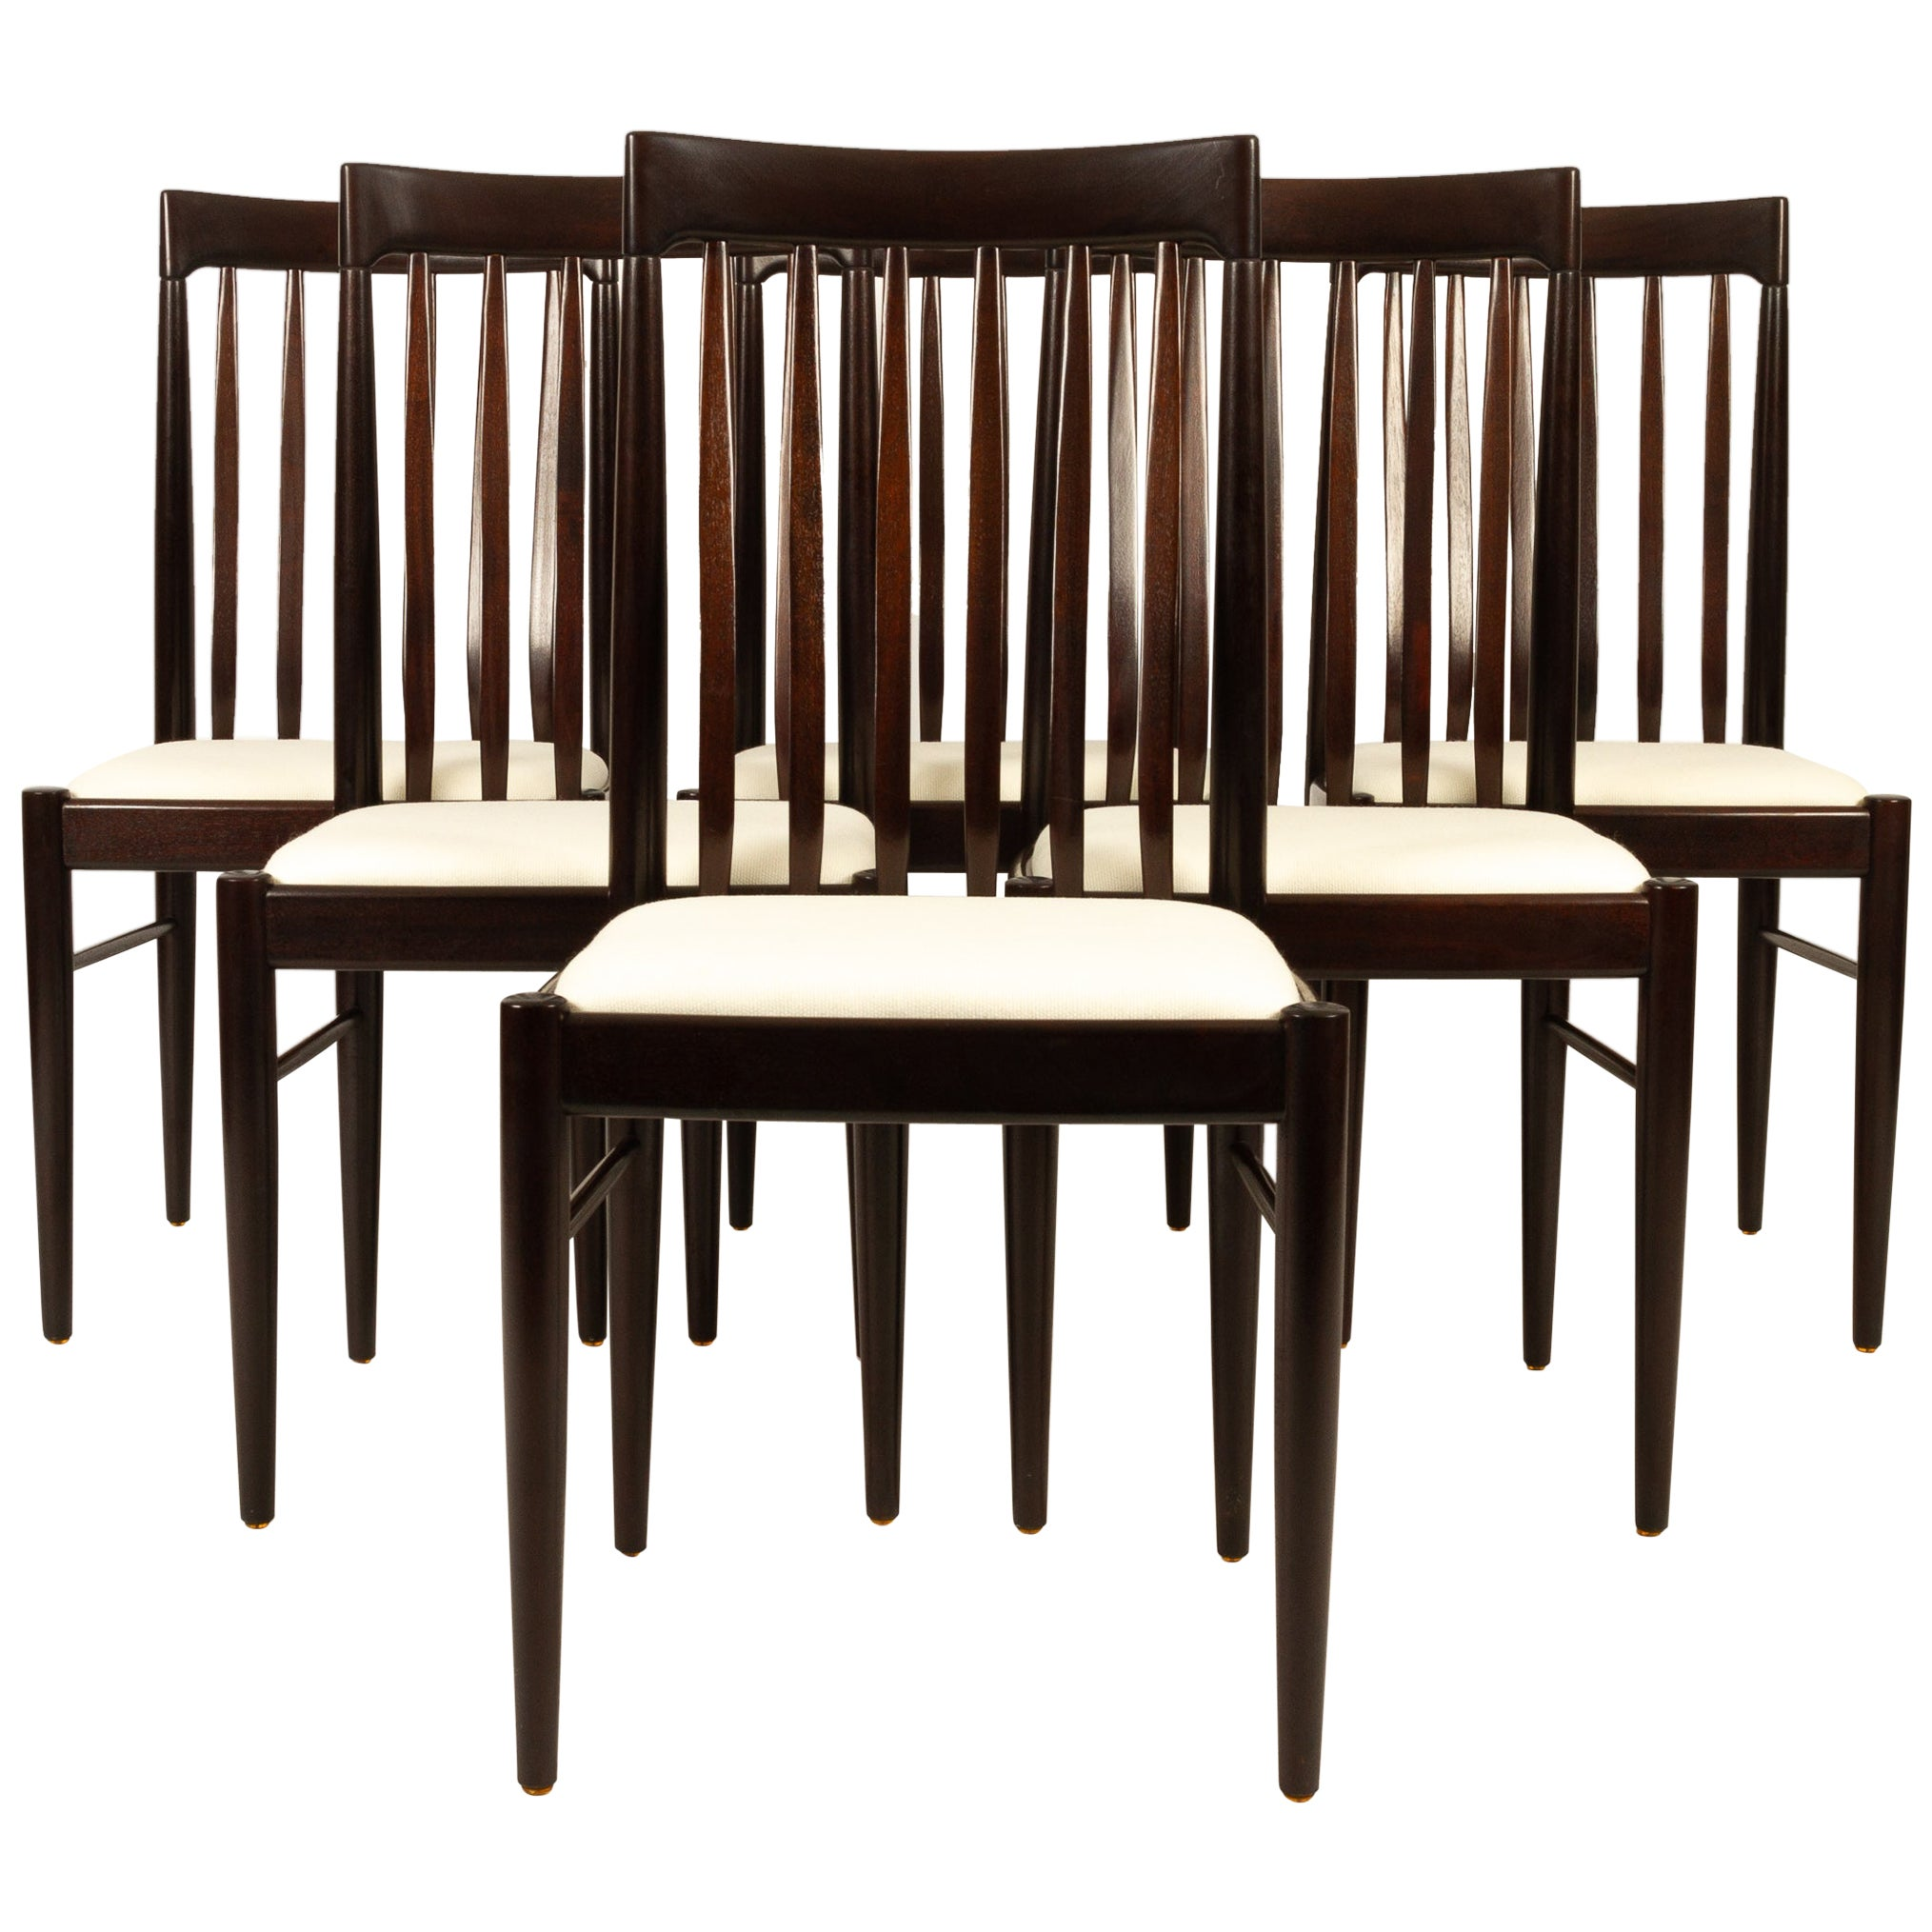 Danish Mahogany Dining Chairs by H. W. Klein for Bramin 1970s Set of 6